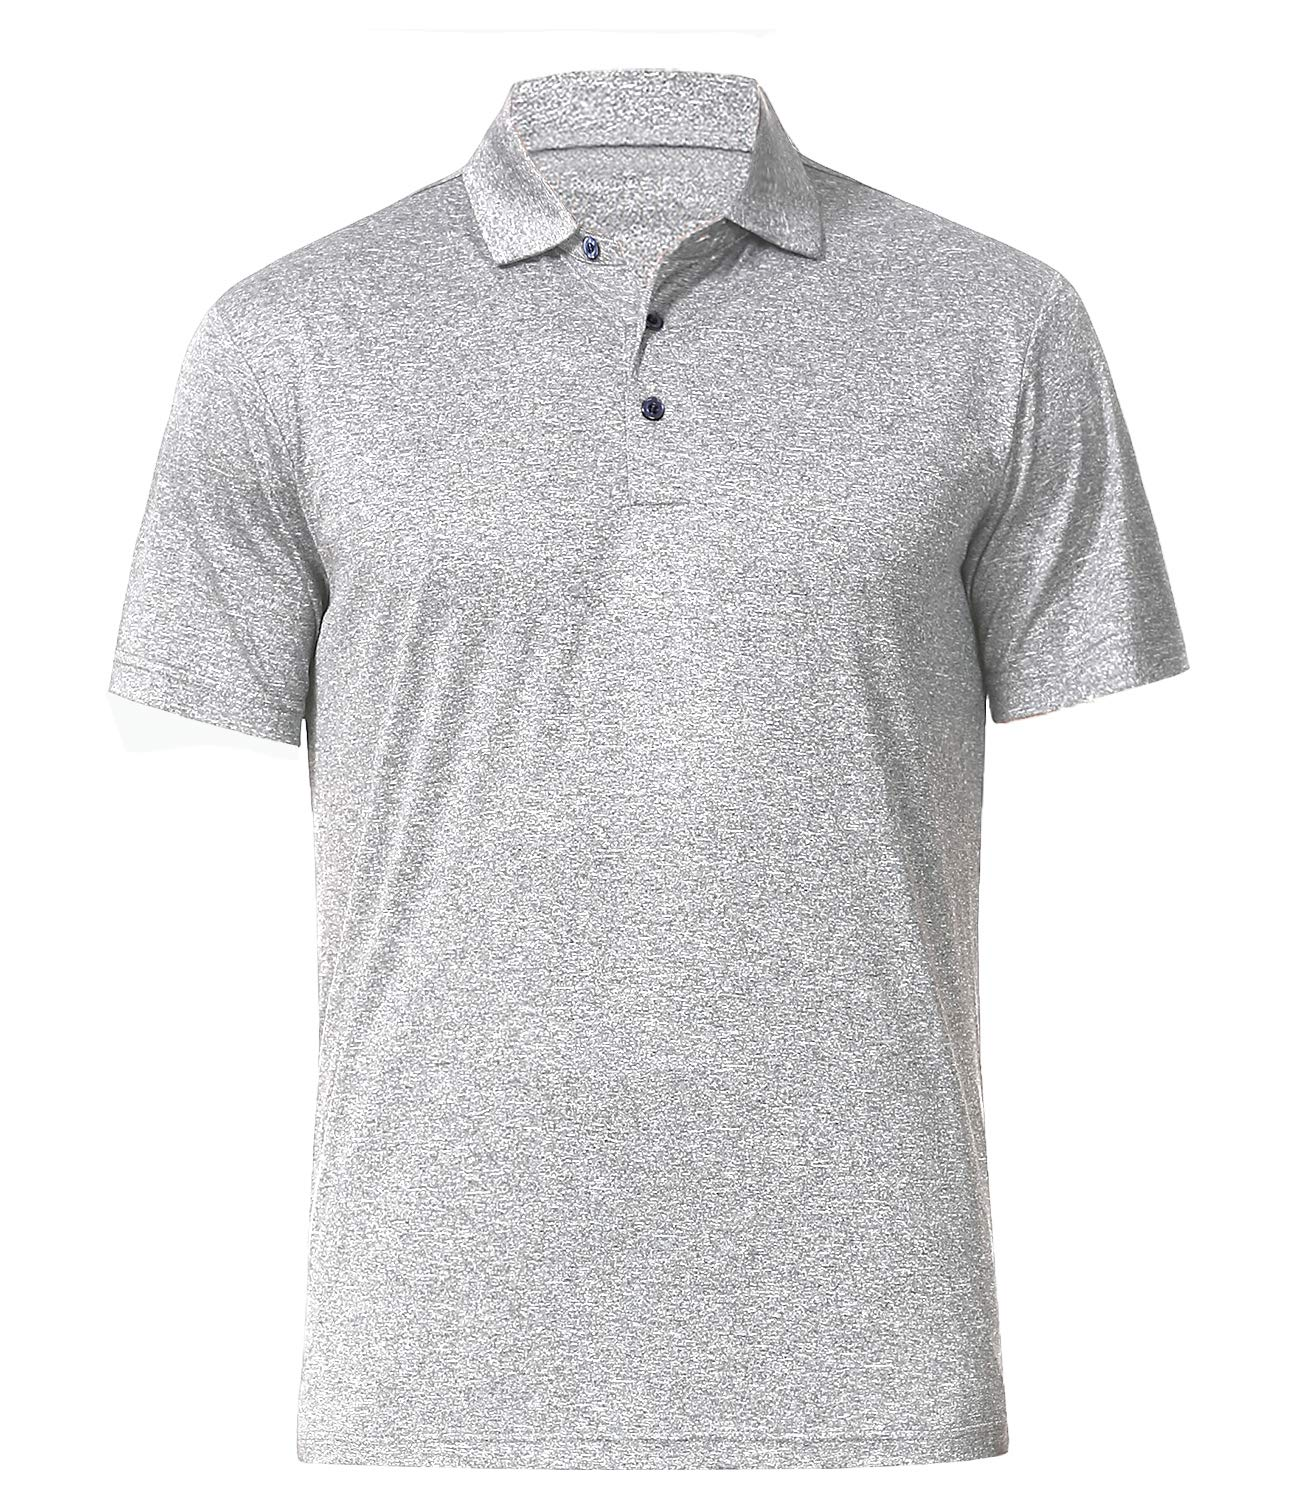 Men's Athletic Golf Polo Shirts, Dry Fit Short Sleeve Workout Shirt (M, Light Grey) by COSSNISS